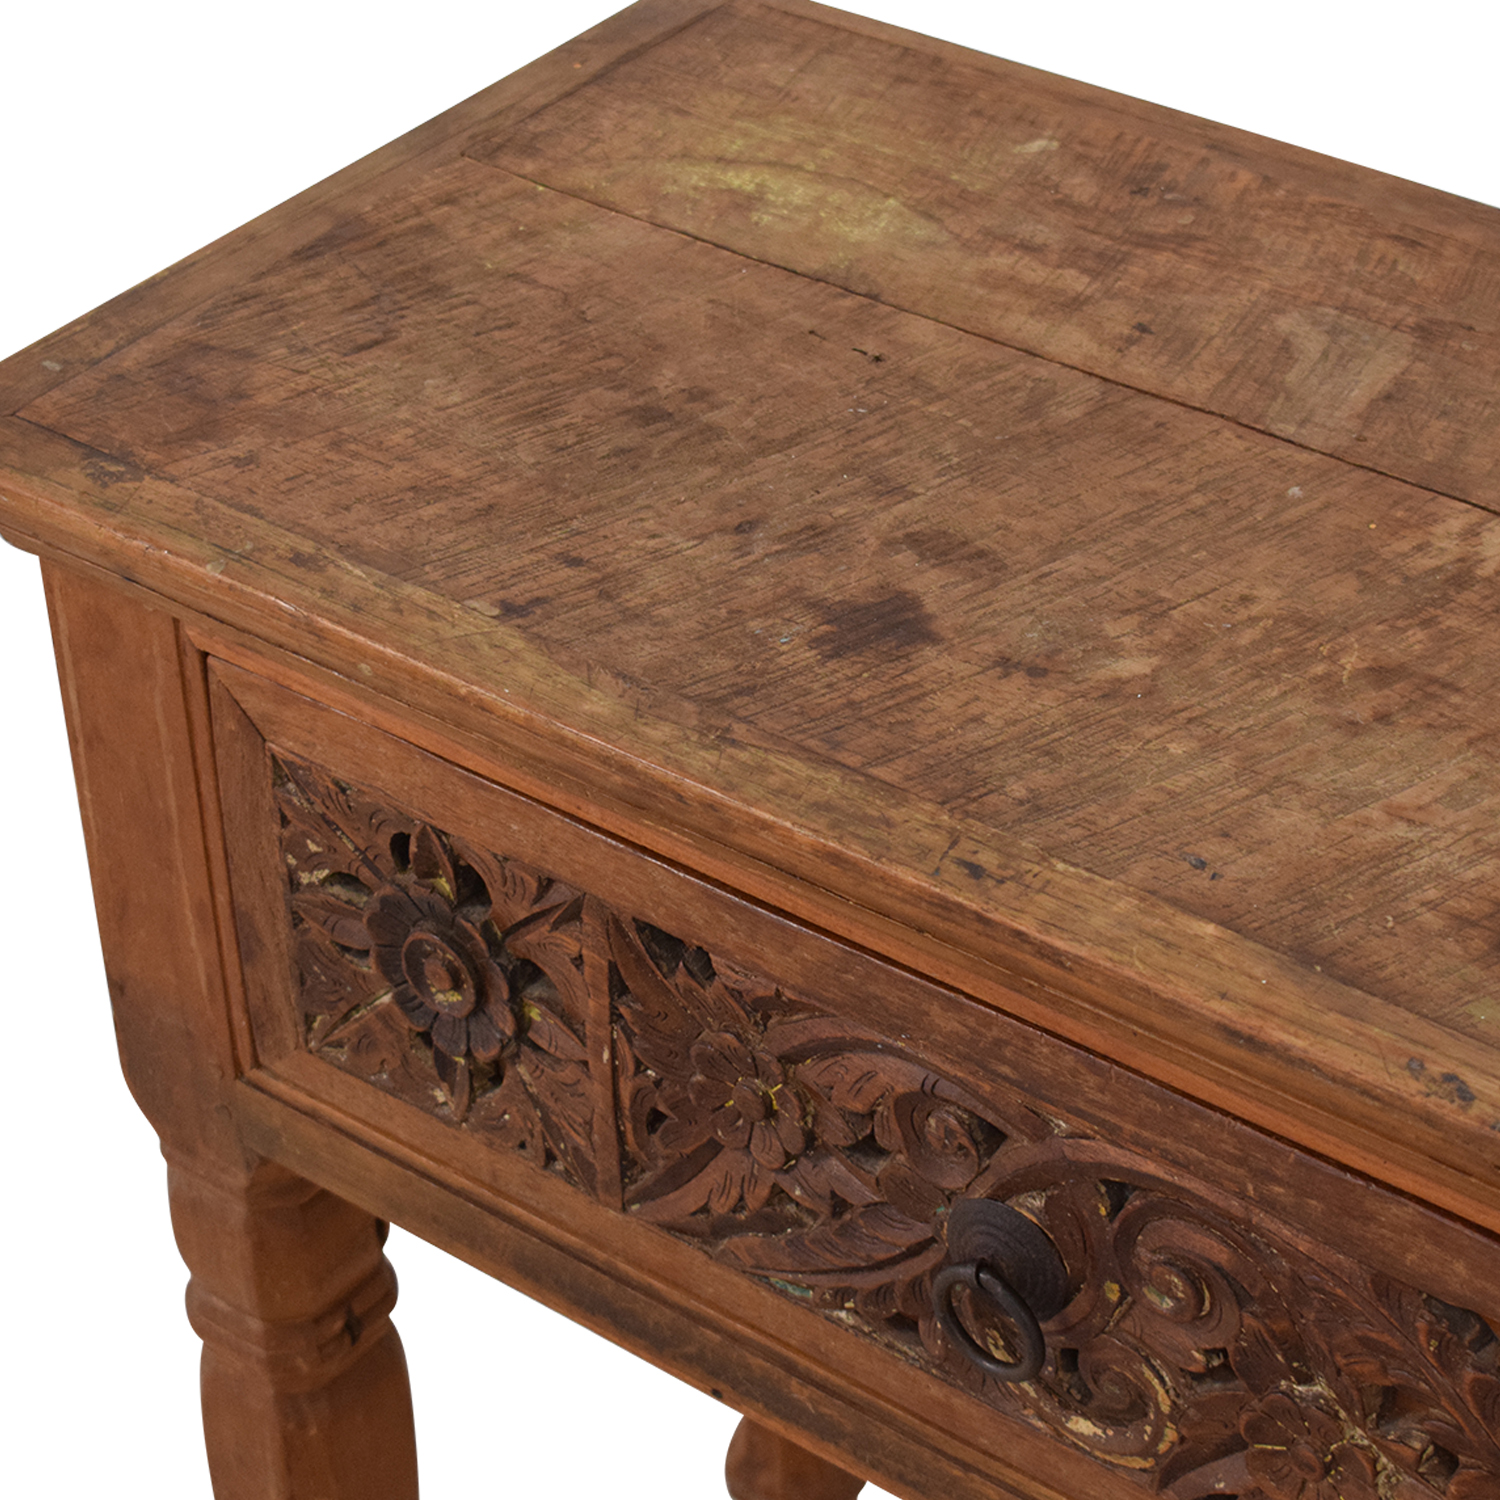 ABC Carpet & Home ABC Carpet & Home Carved Indonesian Style Console Table brown